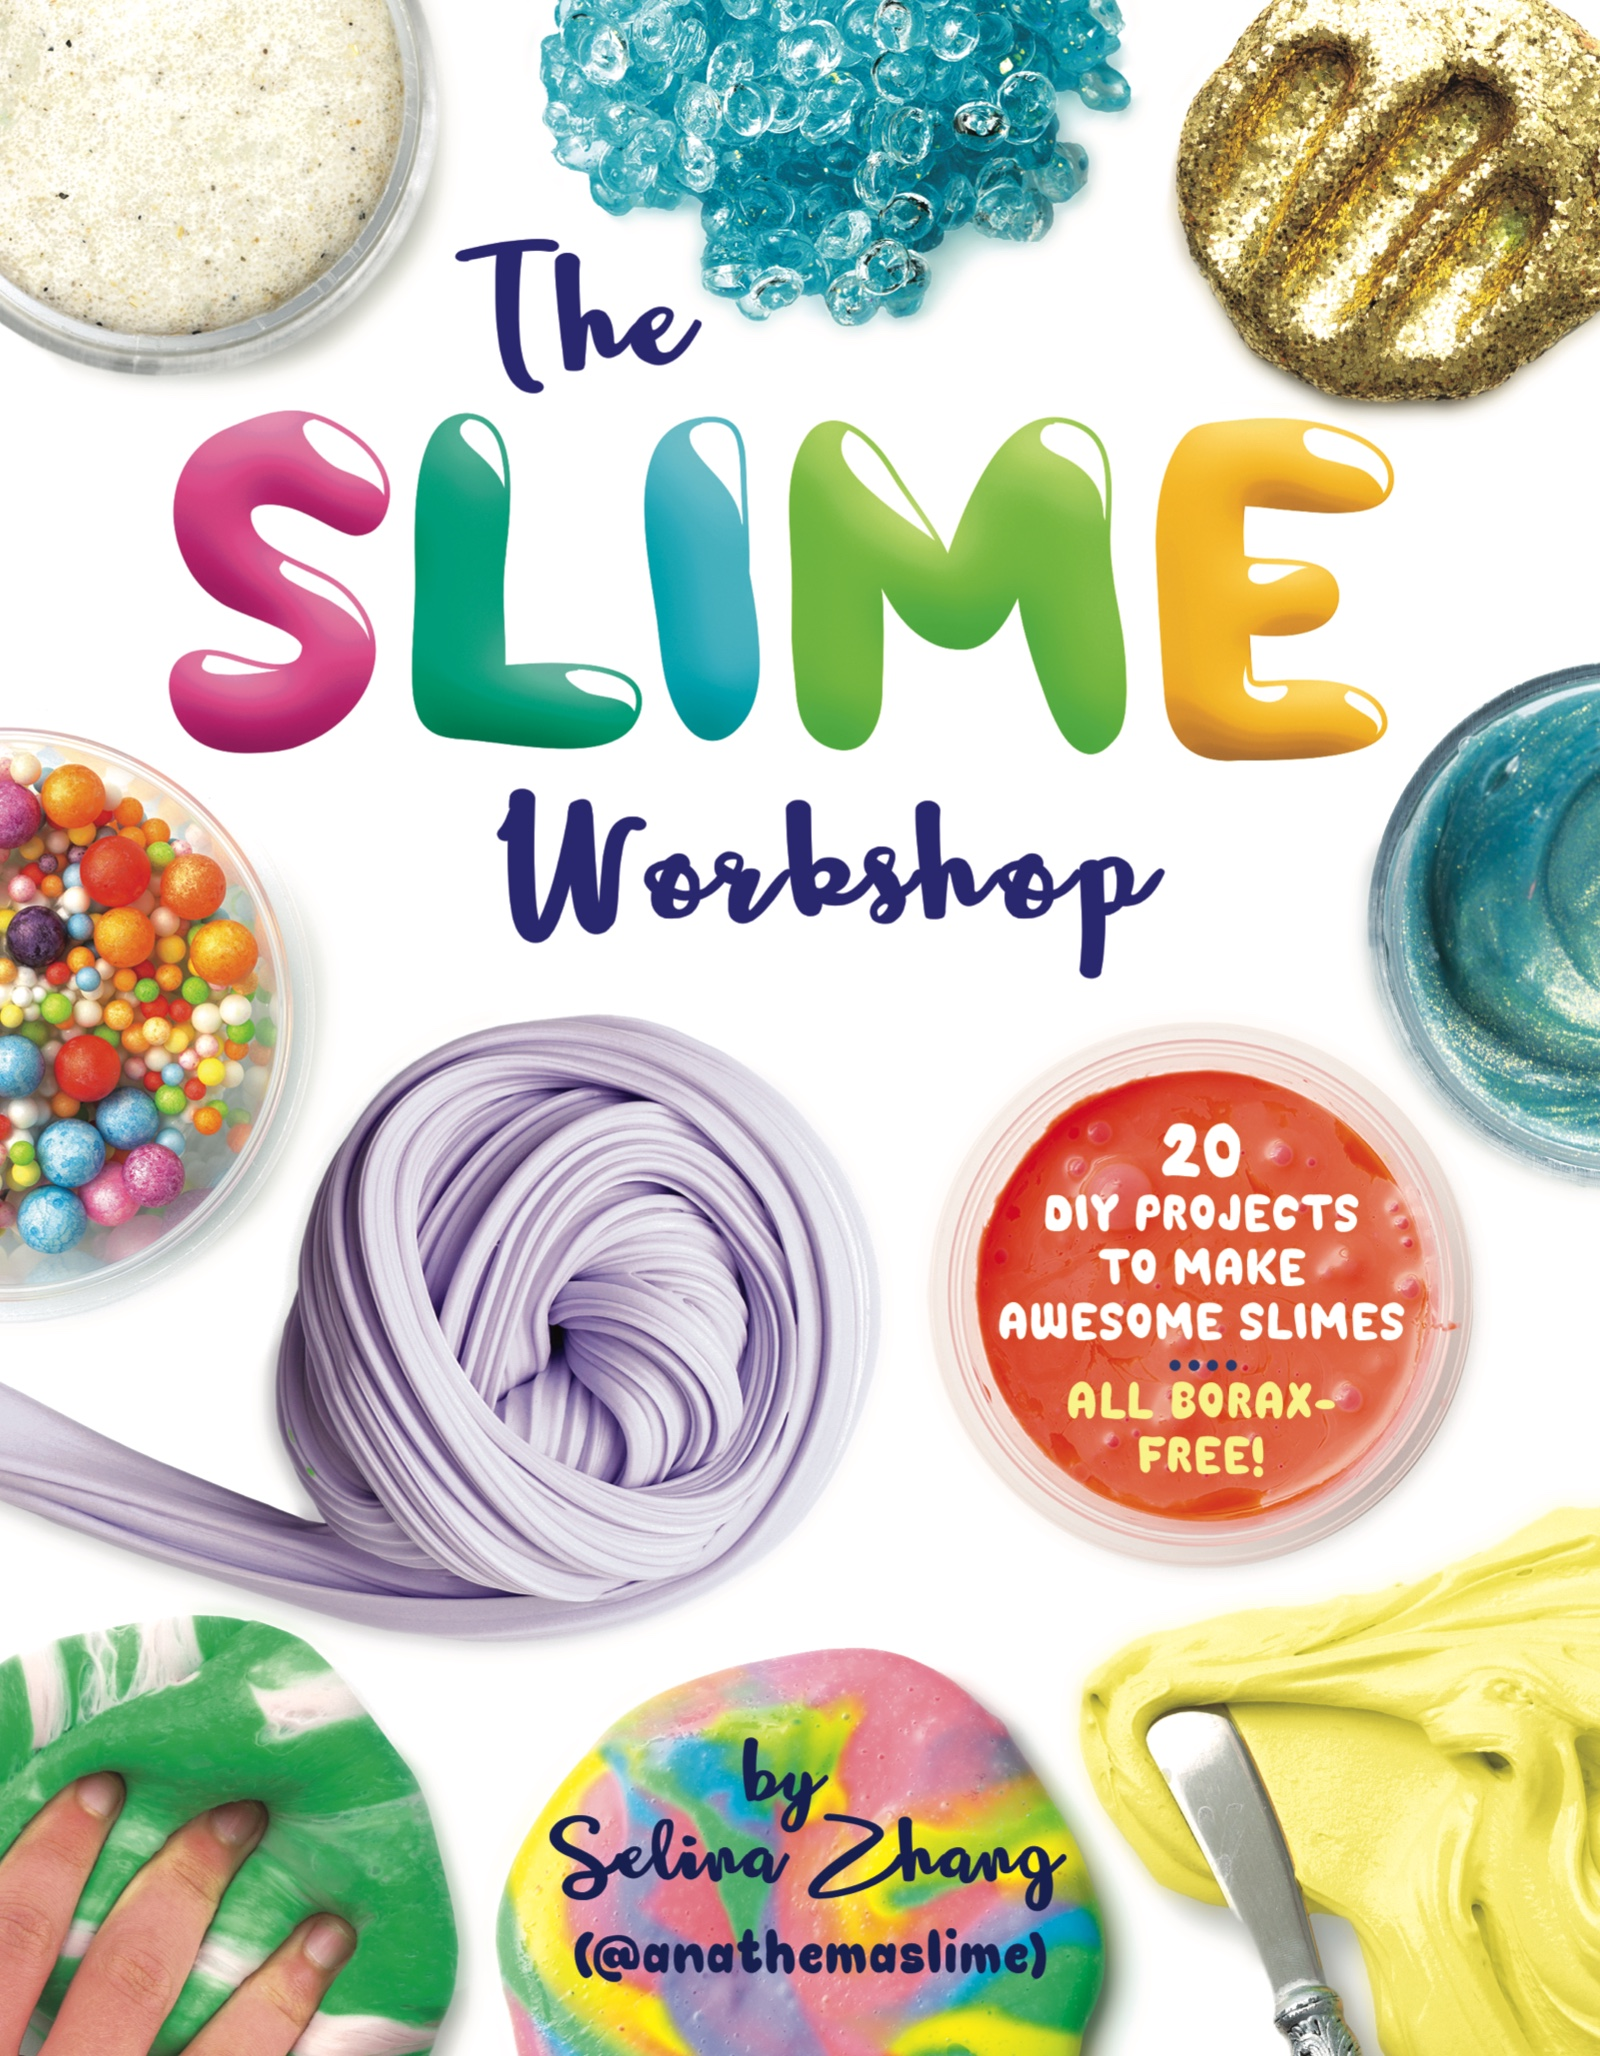 The Slime Workshop 20 DIY Projects to Make Awesome Slimes—All Borax Free!